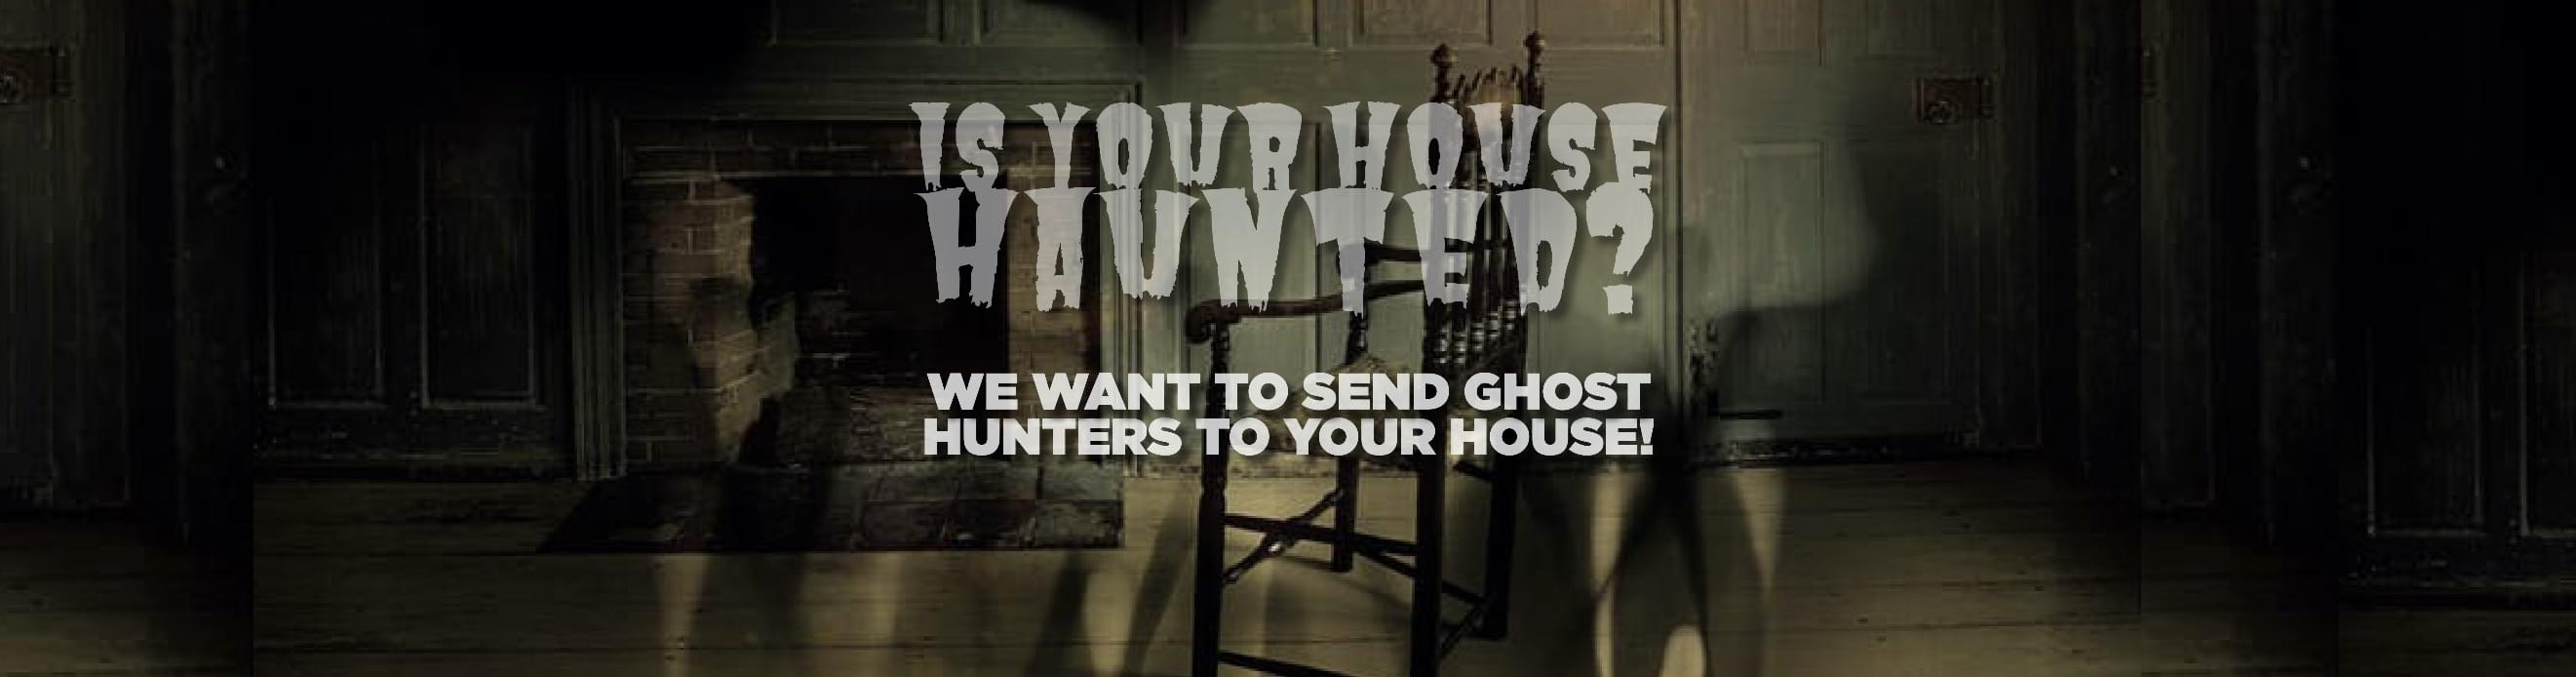 Is Your House HAUNTED??